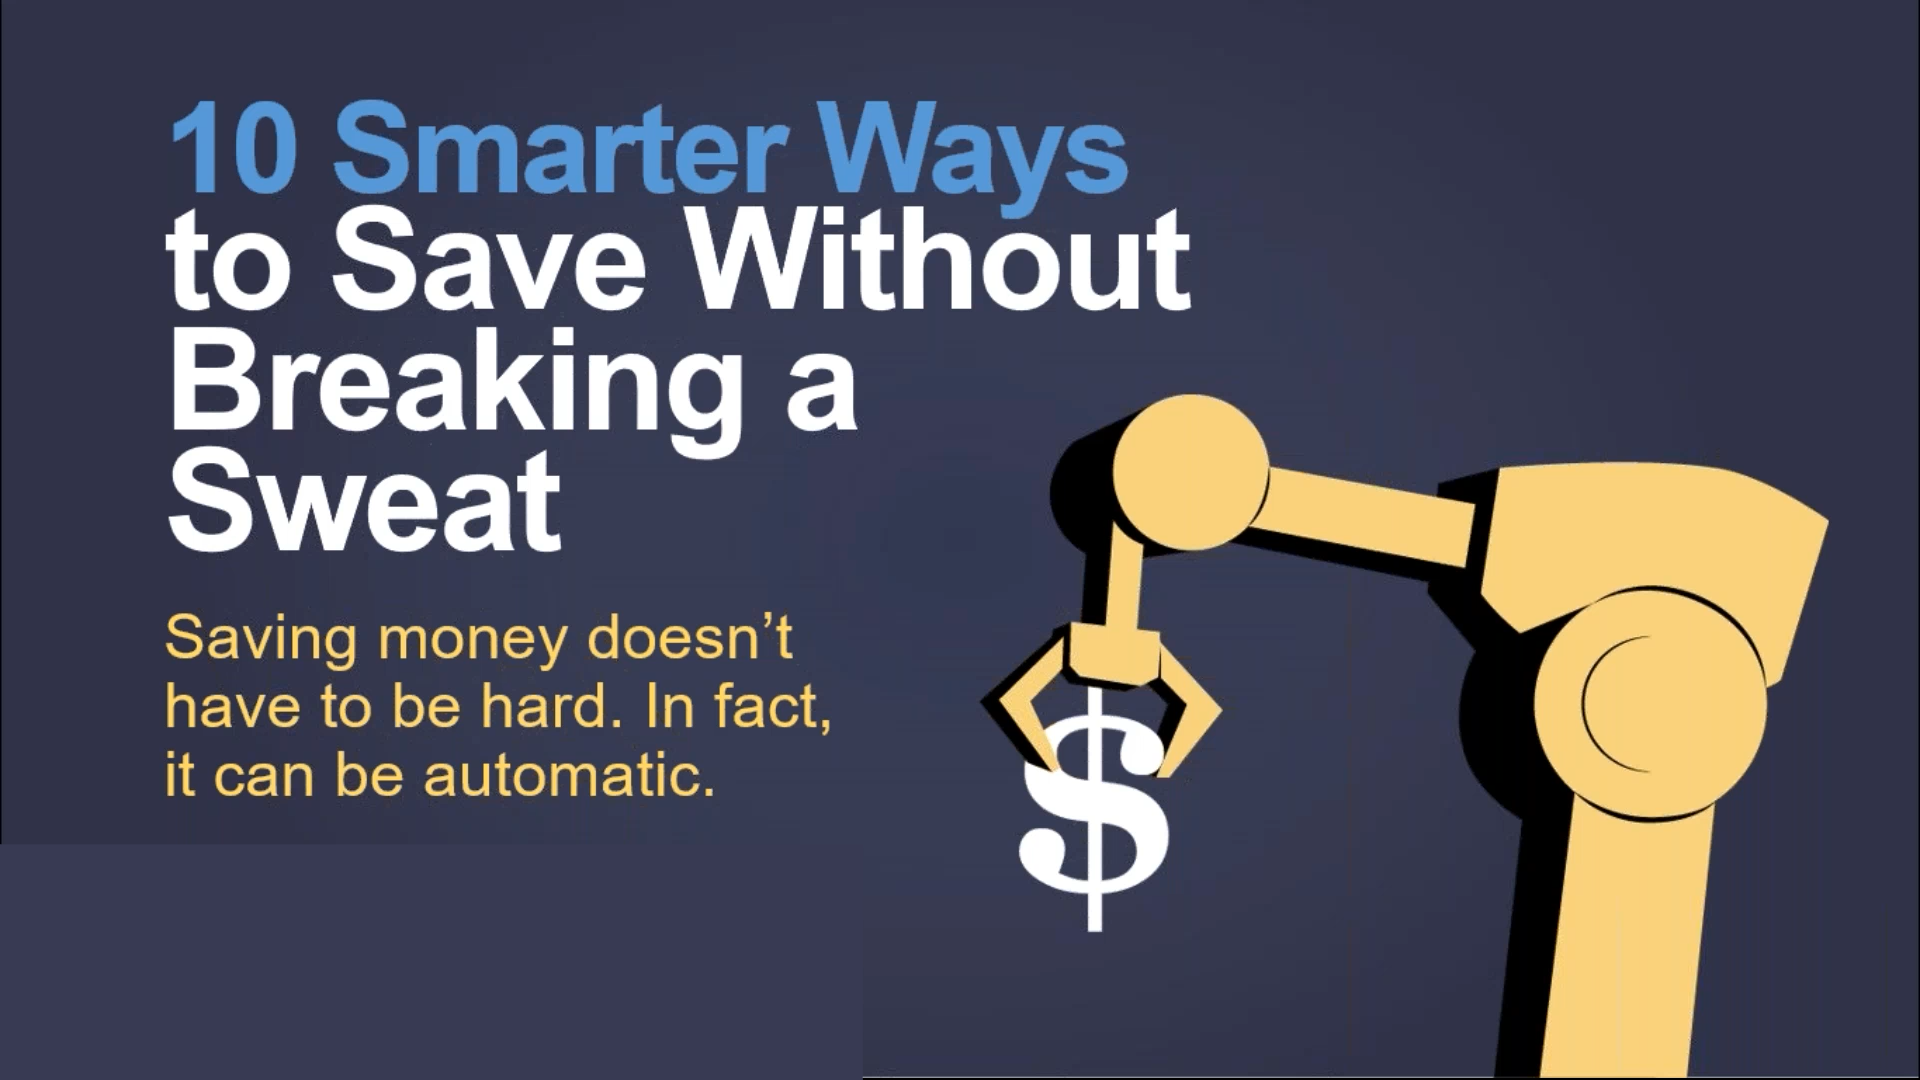 10 Smarter Ways to Save Without Breaking a Sweat - Saving money doesn't have to be hard. In fact, it can be automatic.